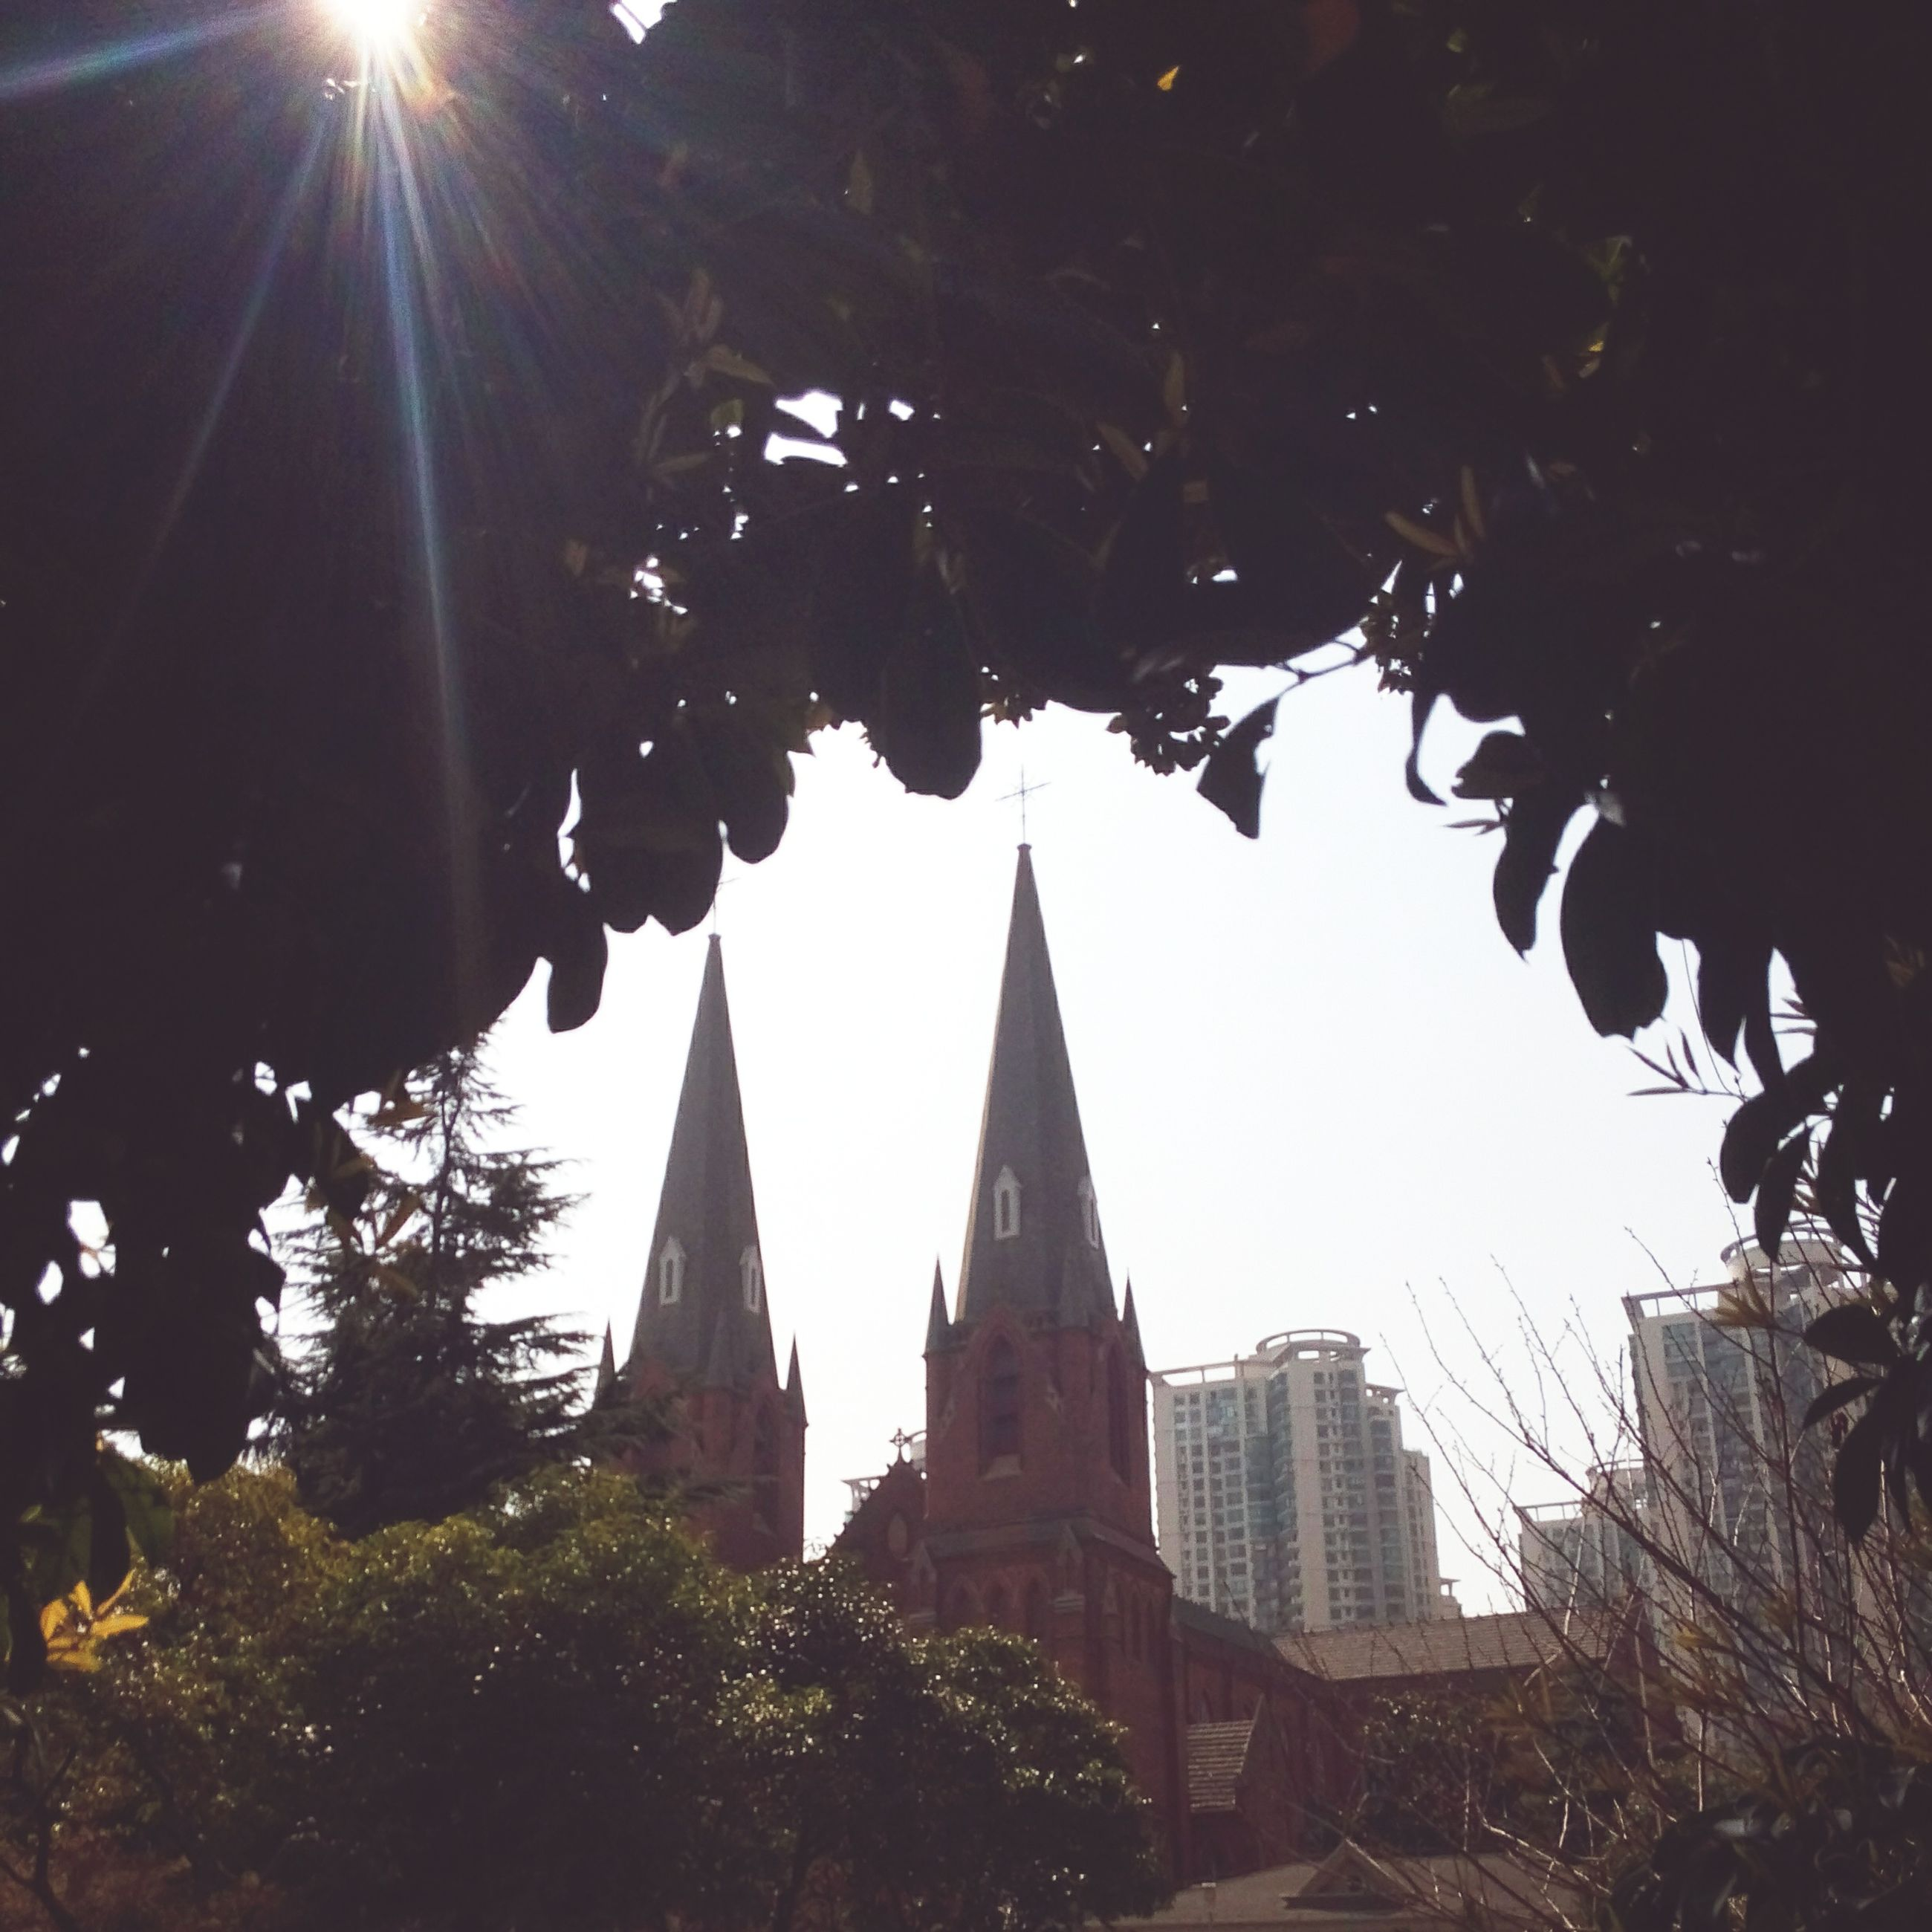 building exterior, architecture, built structure, religion, place of worship, spirituality, low angle view, church, clear sky, tree, sun, sunlight, city, sky, steeple, branch, lens flare, cathedral